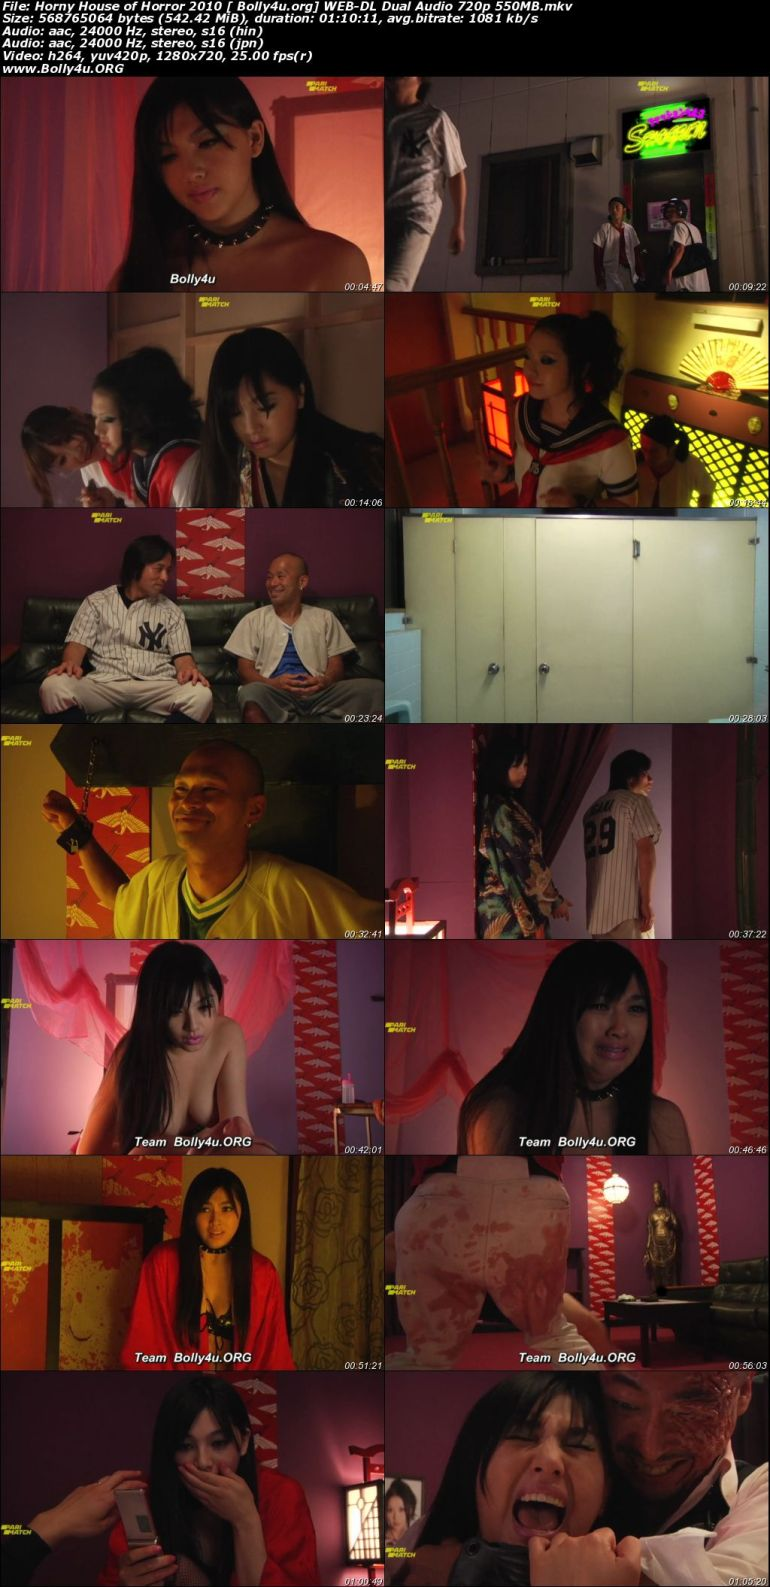 18+ Horny House of Horror 2010 WEB-DL 550Mb Hindi Dual Audio 720p Download